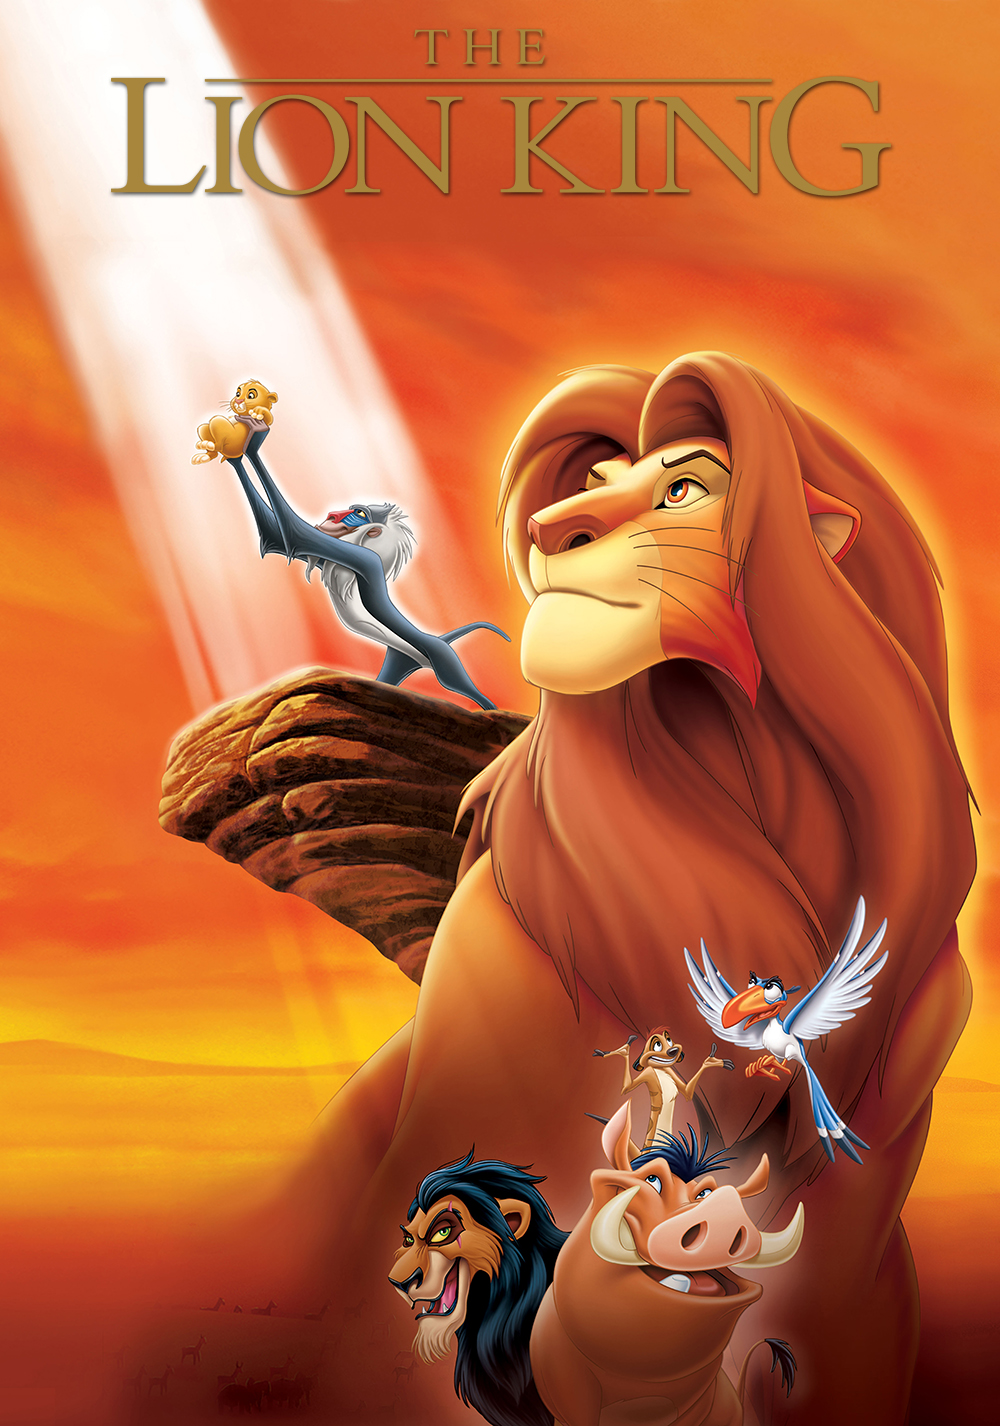 """The Lion King"": Throwback-Tamales Review"